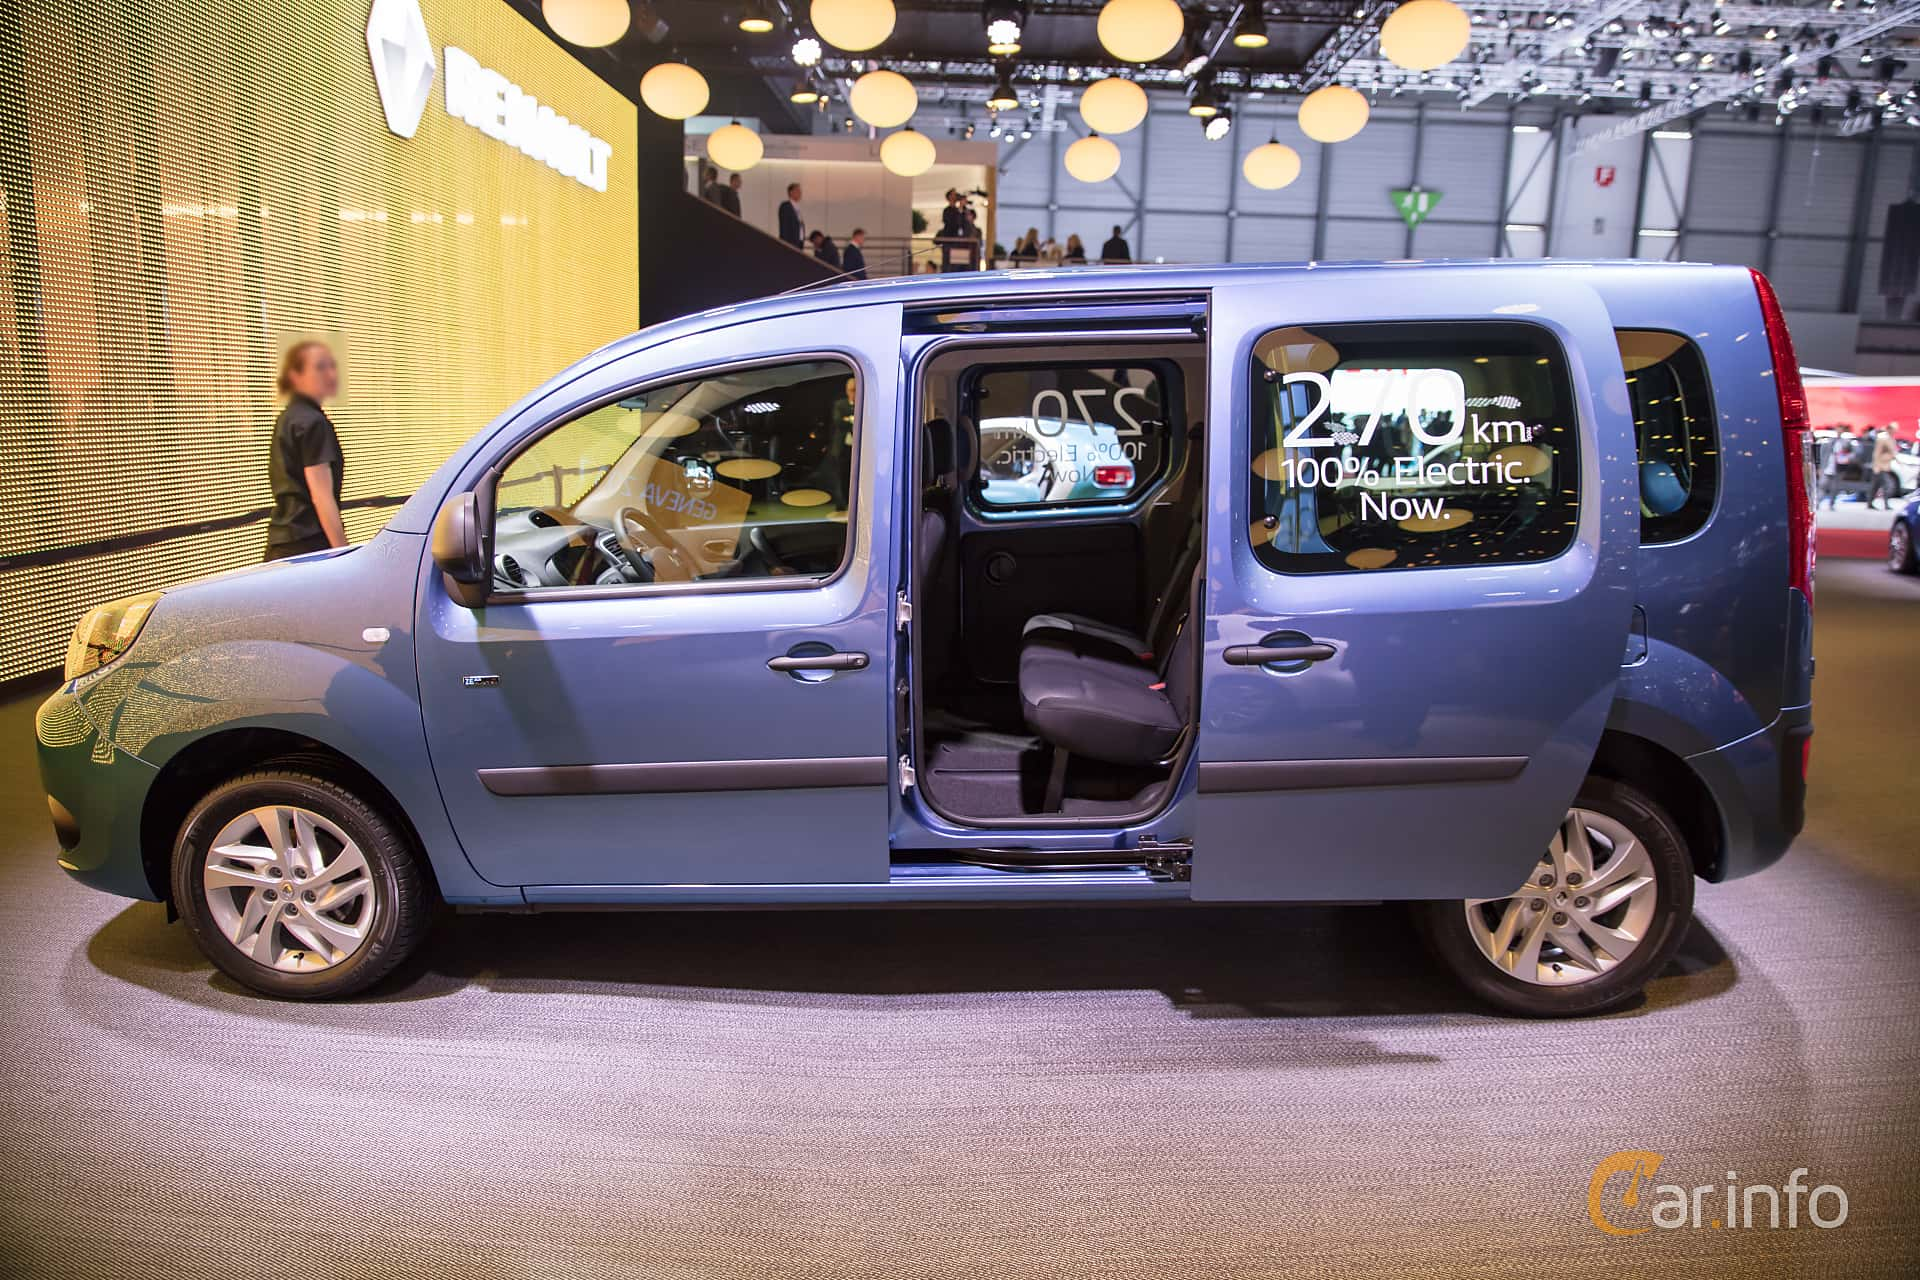 renault kangoo z e express maxi passenger 22 kwh single speed 60hp 2017 at geneva motor show 2017. Black Bedroom Furniture Sets. Home Design Ideas